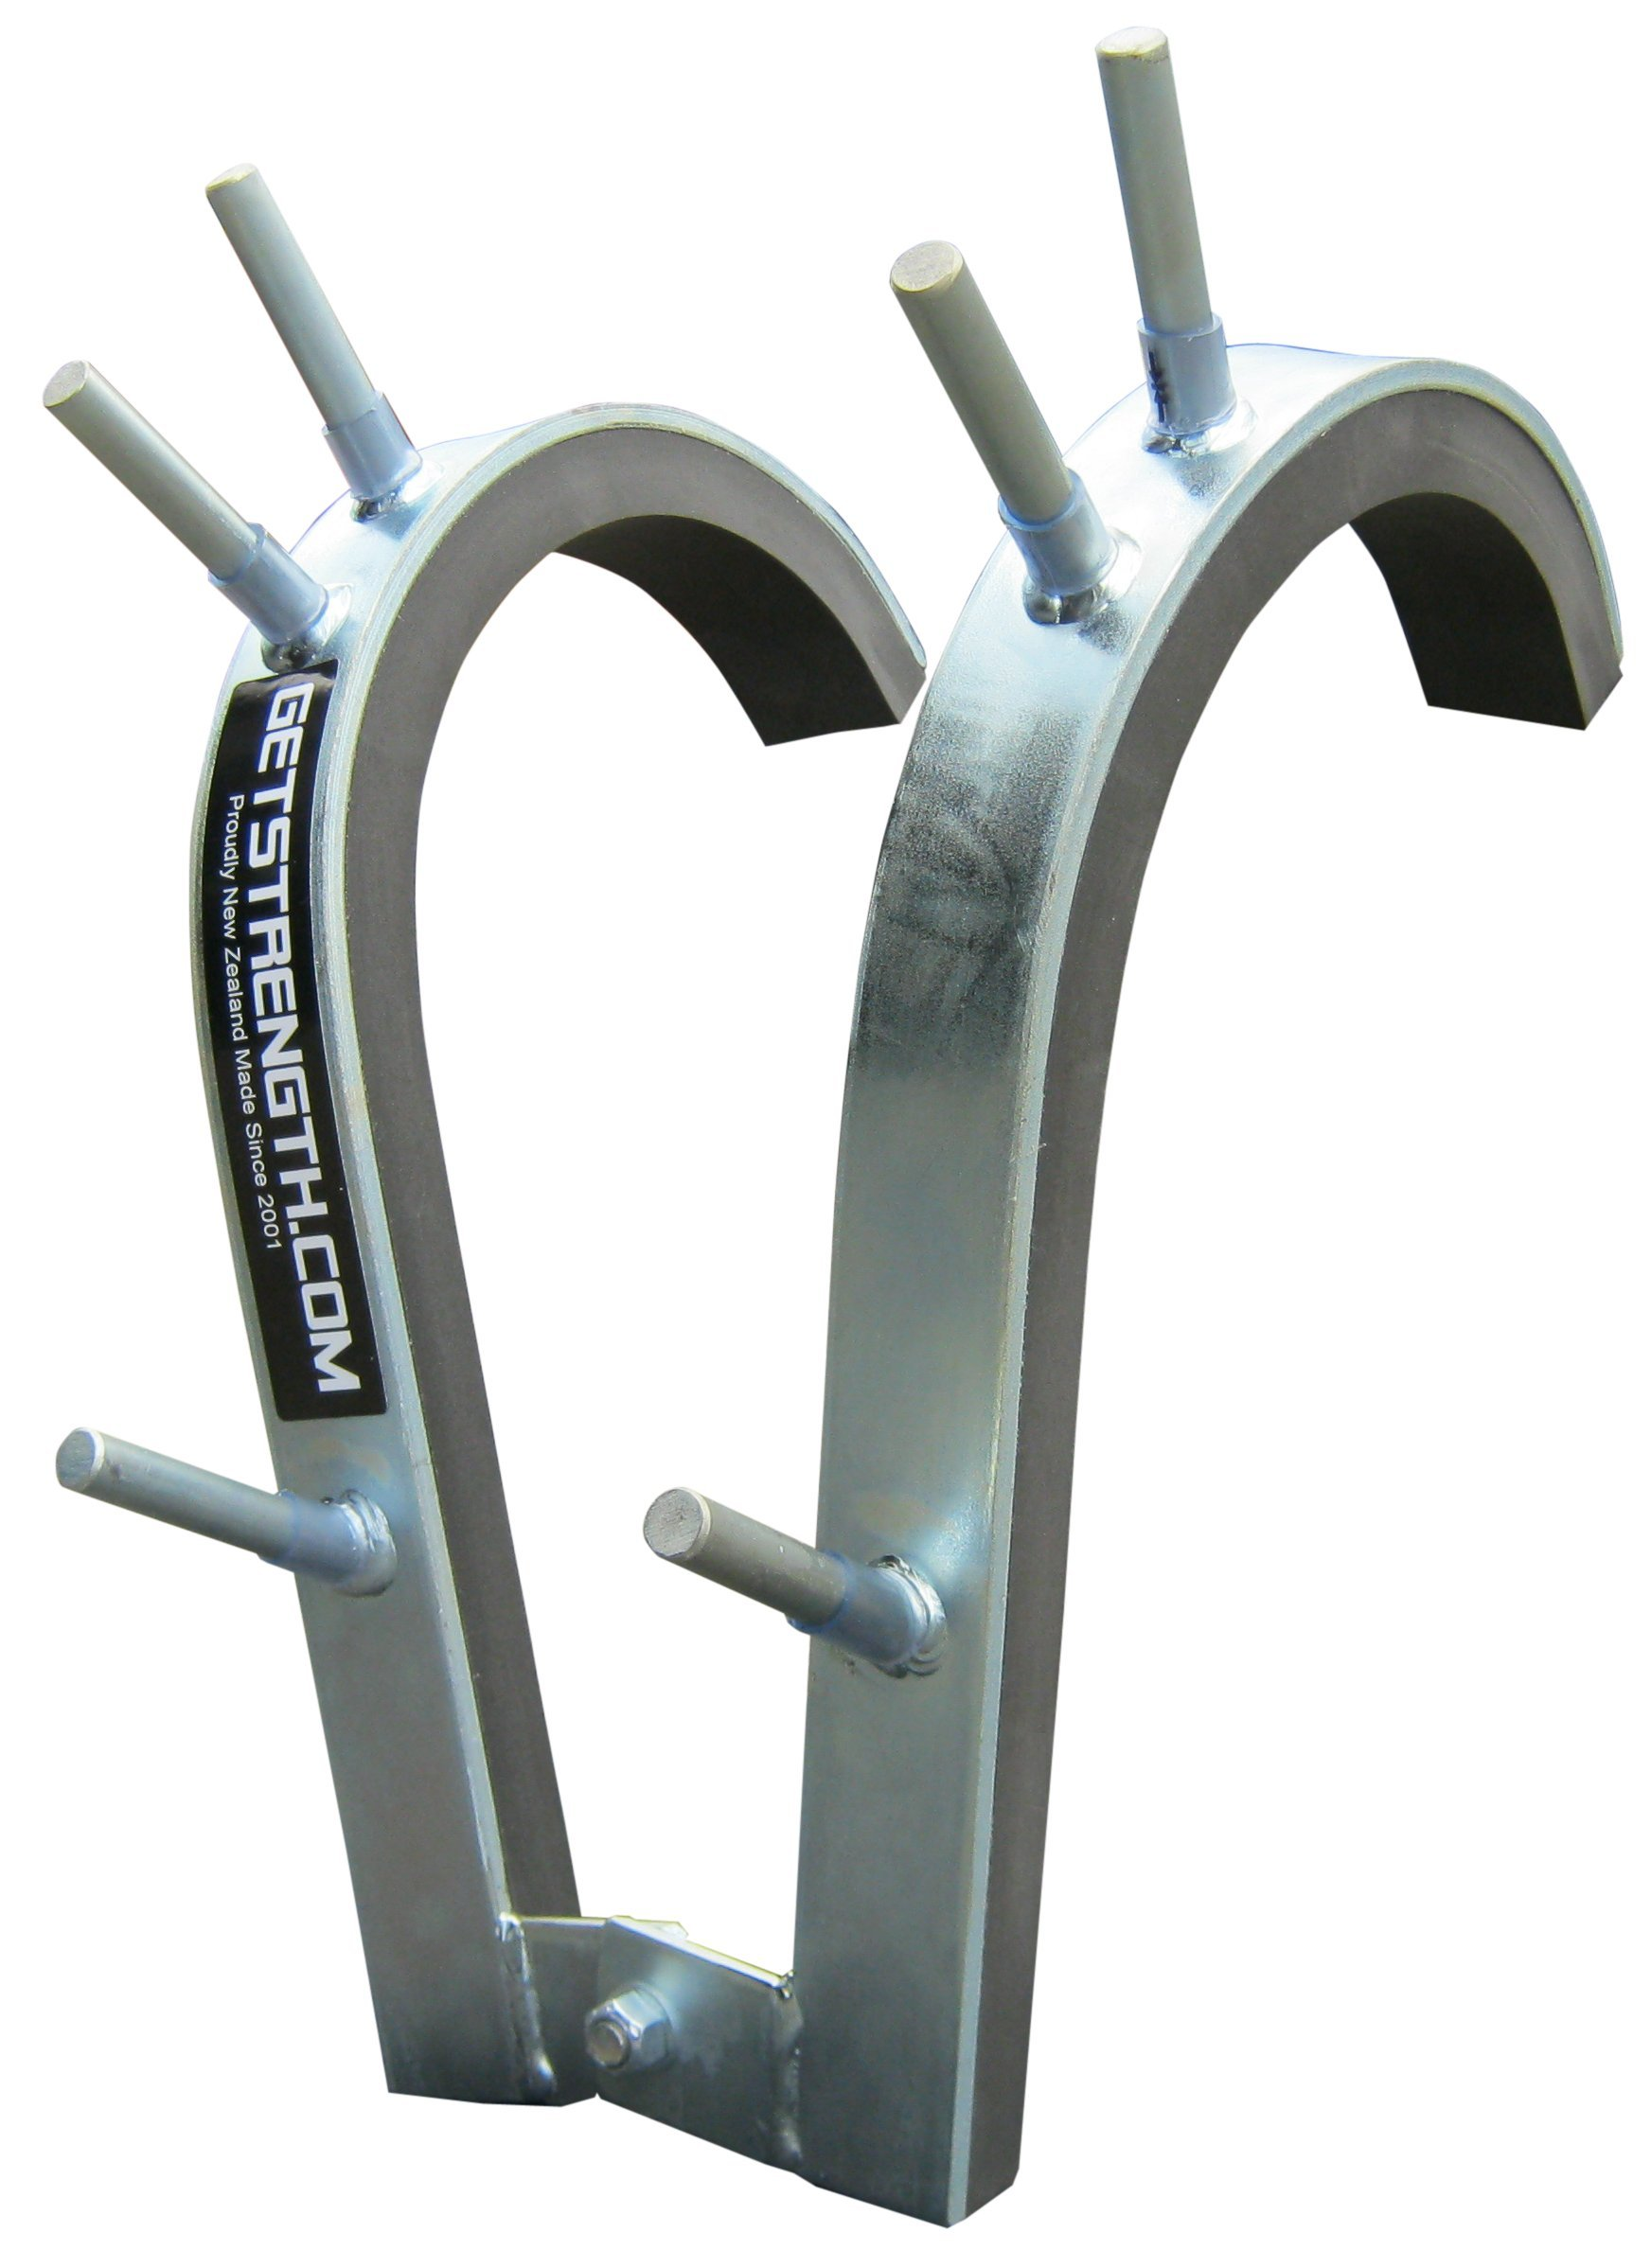 Getstrength Front Squat Zercher Harness (Medium - 46 inch and under chest) by GetStrength (Image #2)